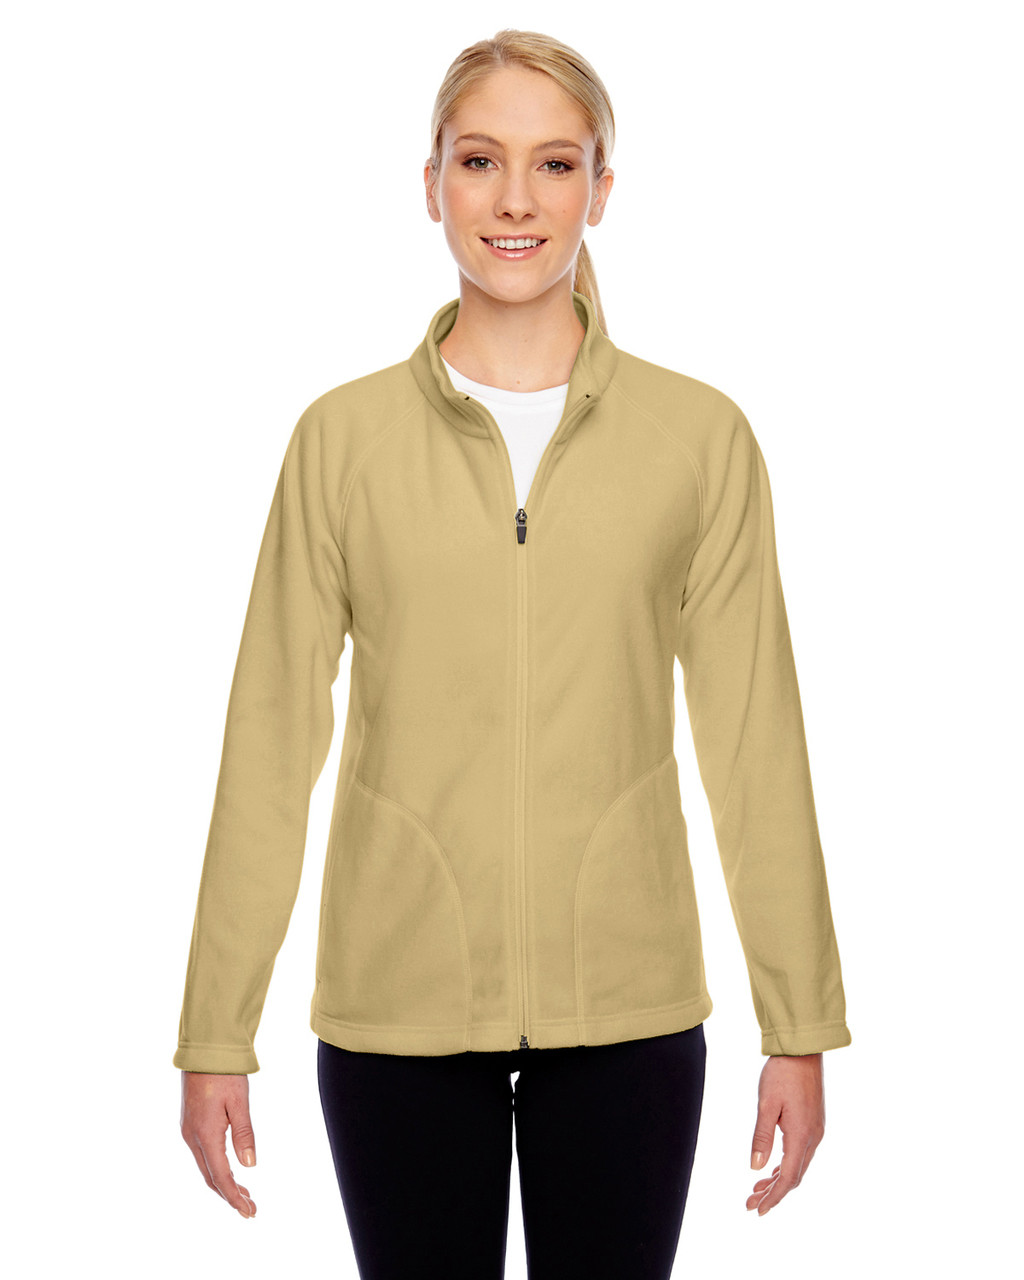 Vegas Gold - TT90W Team 365 Ladies' Campus Microfleece Jacket | BlankClothing.ca